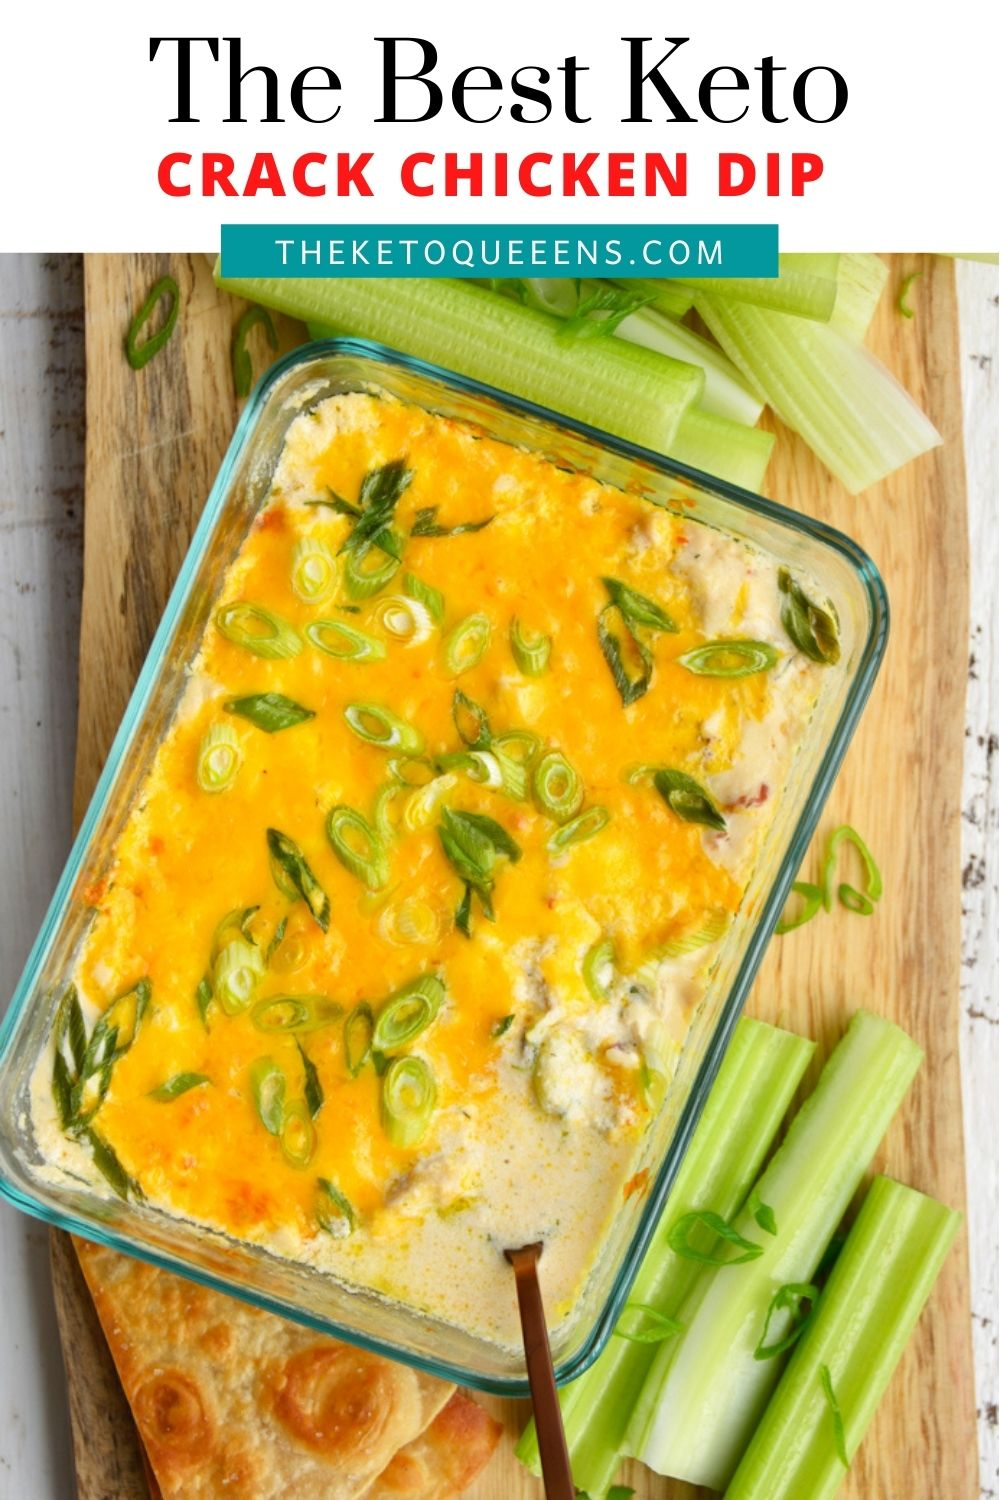 Crack Chicken Dip transforms everyone's favorite creamy, flavorful Crack Chicken that into an easy appetizer!